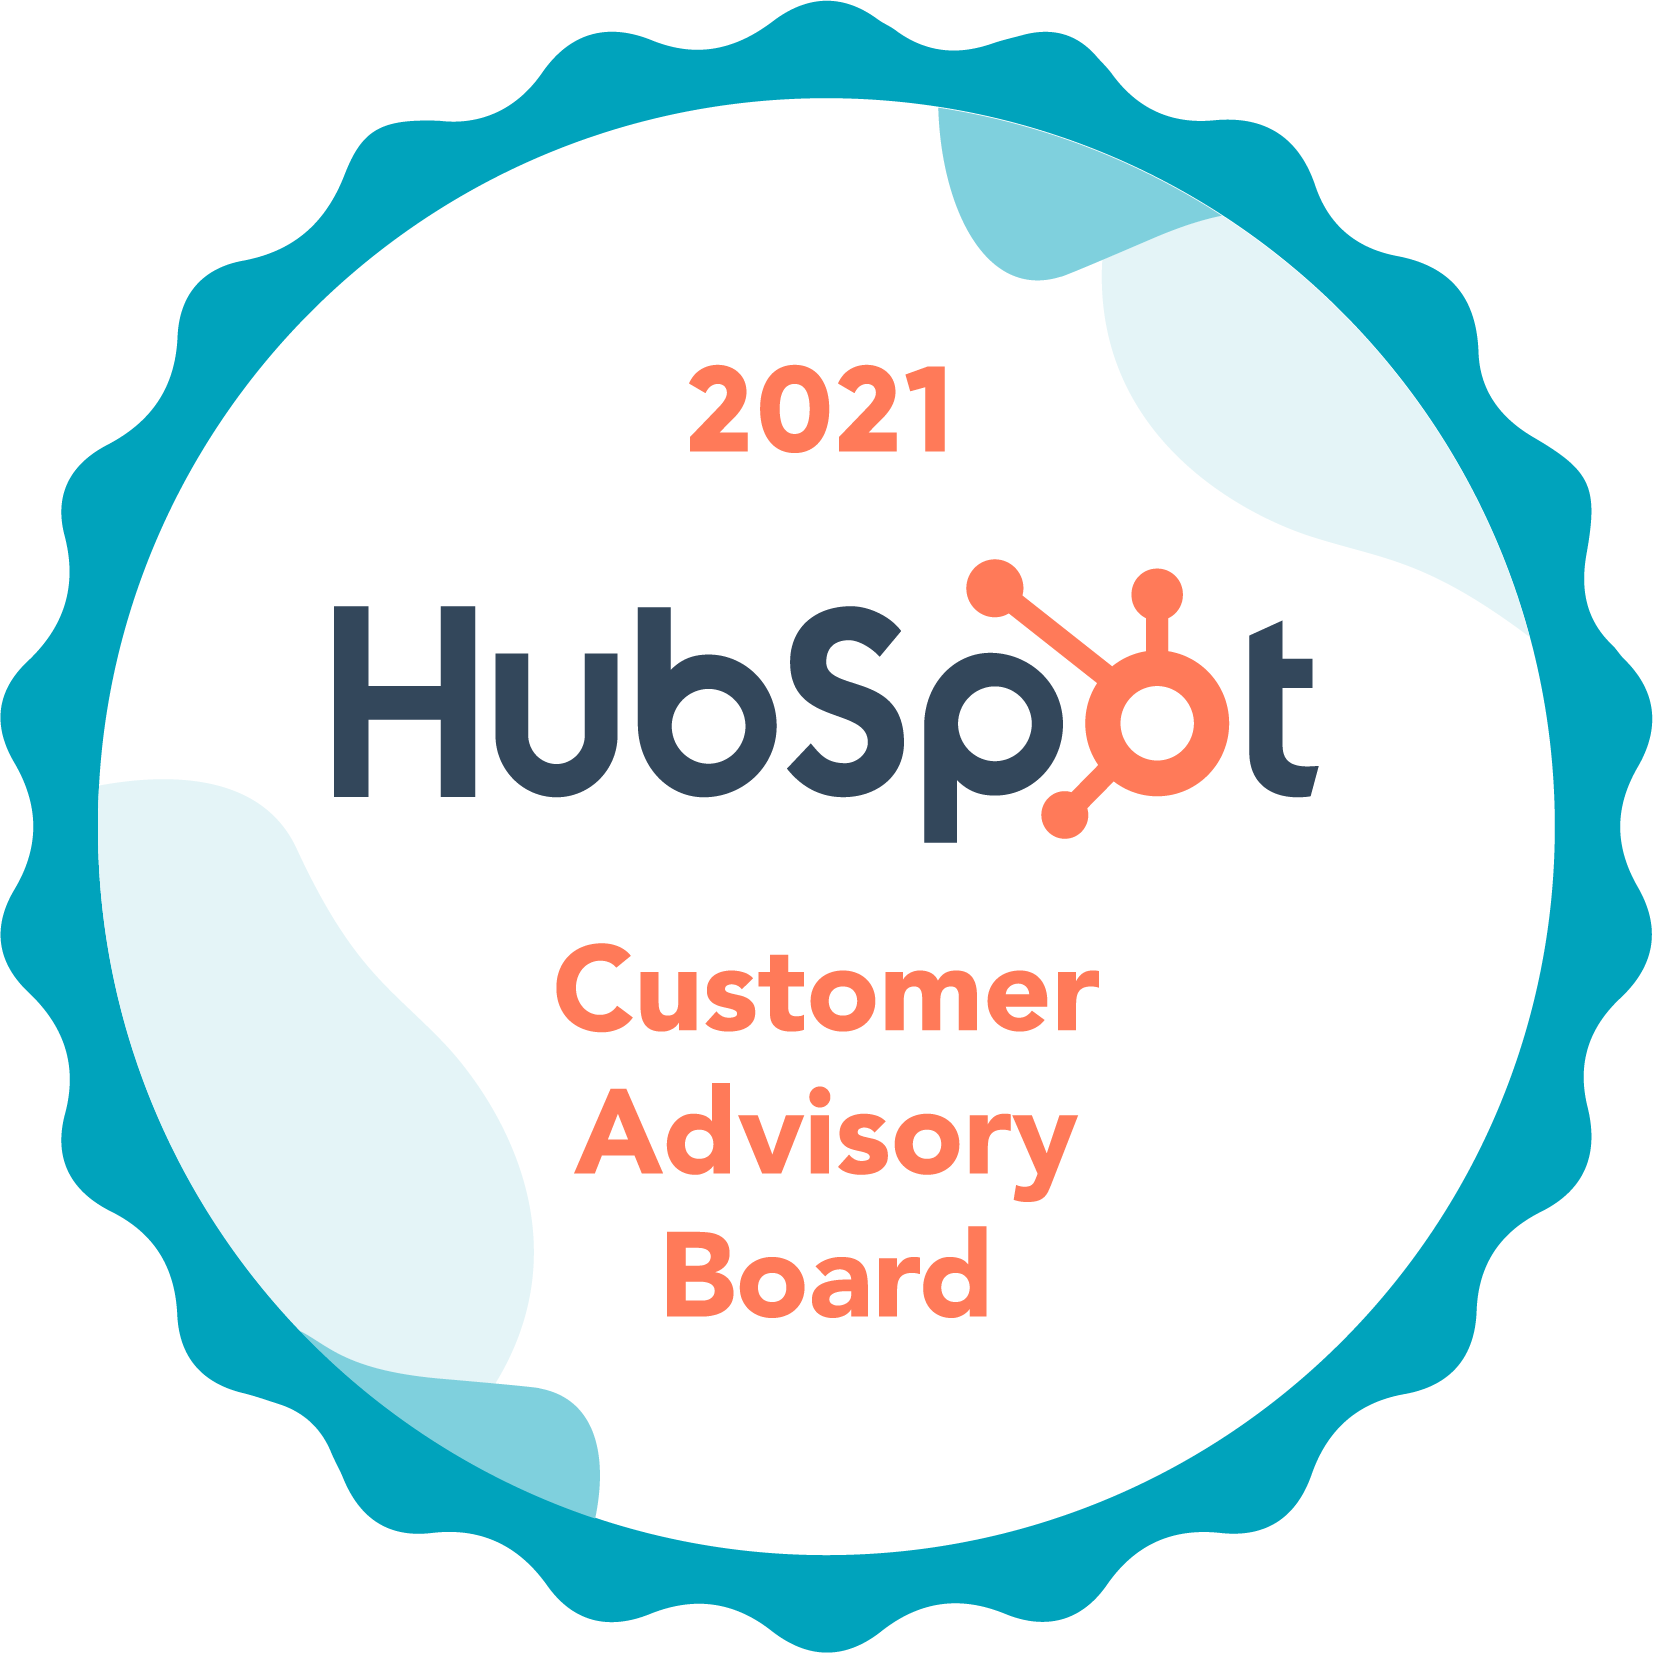 HubSpot Announces 2021 Customer Advisory Board Members